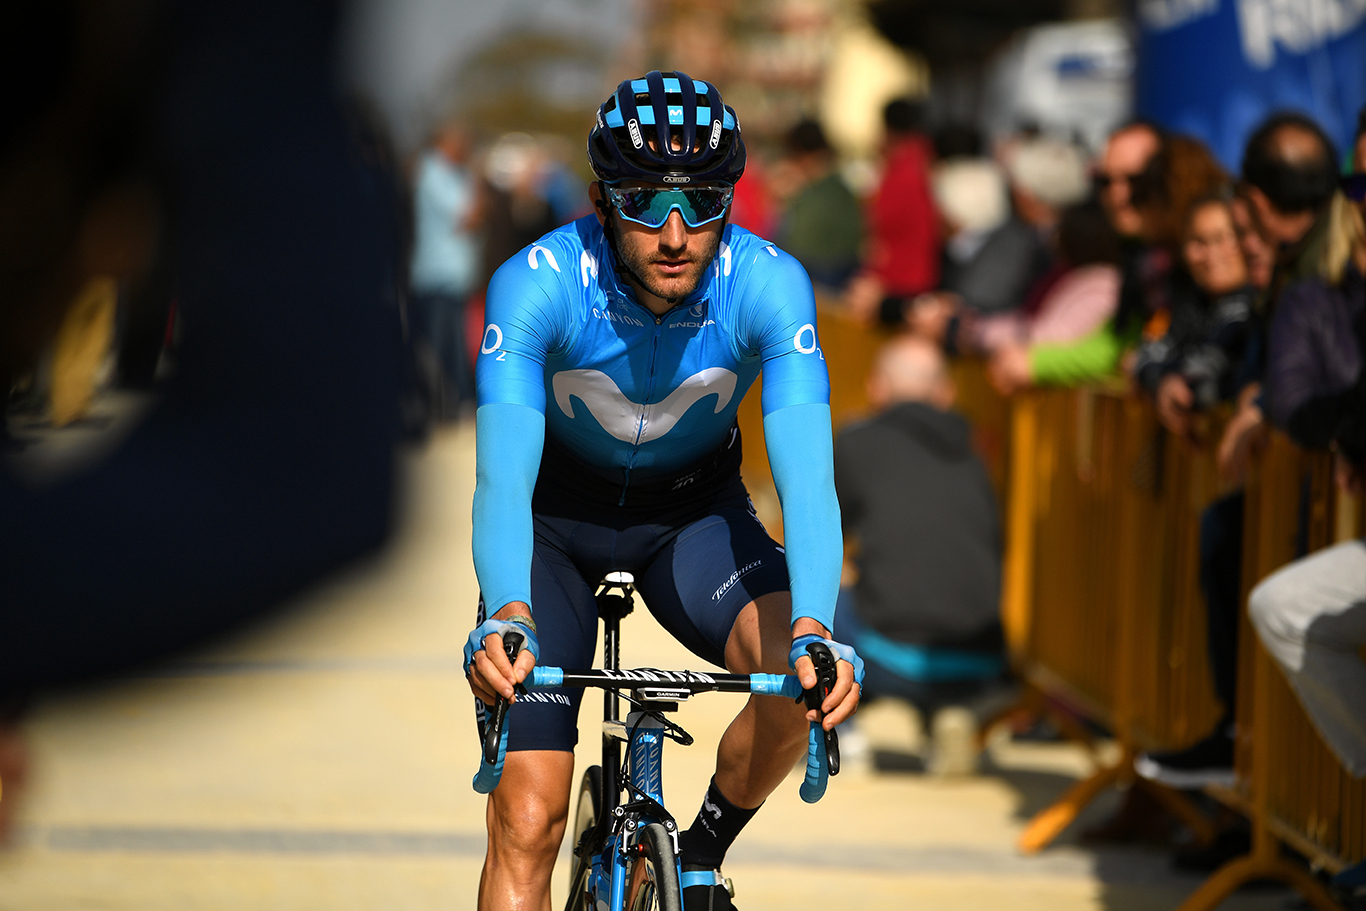 ALCALÁ DE LOS GAZULES, SPAIN - FEBRUARY 20: Start / Carlos Barbero of Spain and Movistar Team / during the 65th Ruta del Sol 2019, Stage 1 a 170,5km stage from Sanlúcar de Barrameda to Alcalá de los Gazules 213m / RDS / @VCANDALUCIA / #vueltaciclistaandalucia2019 / on February 20, 2019 in Alcalá de los Gazules, Spain. (Photo by David Ramos/Getty Images)